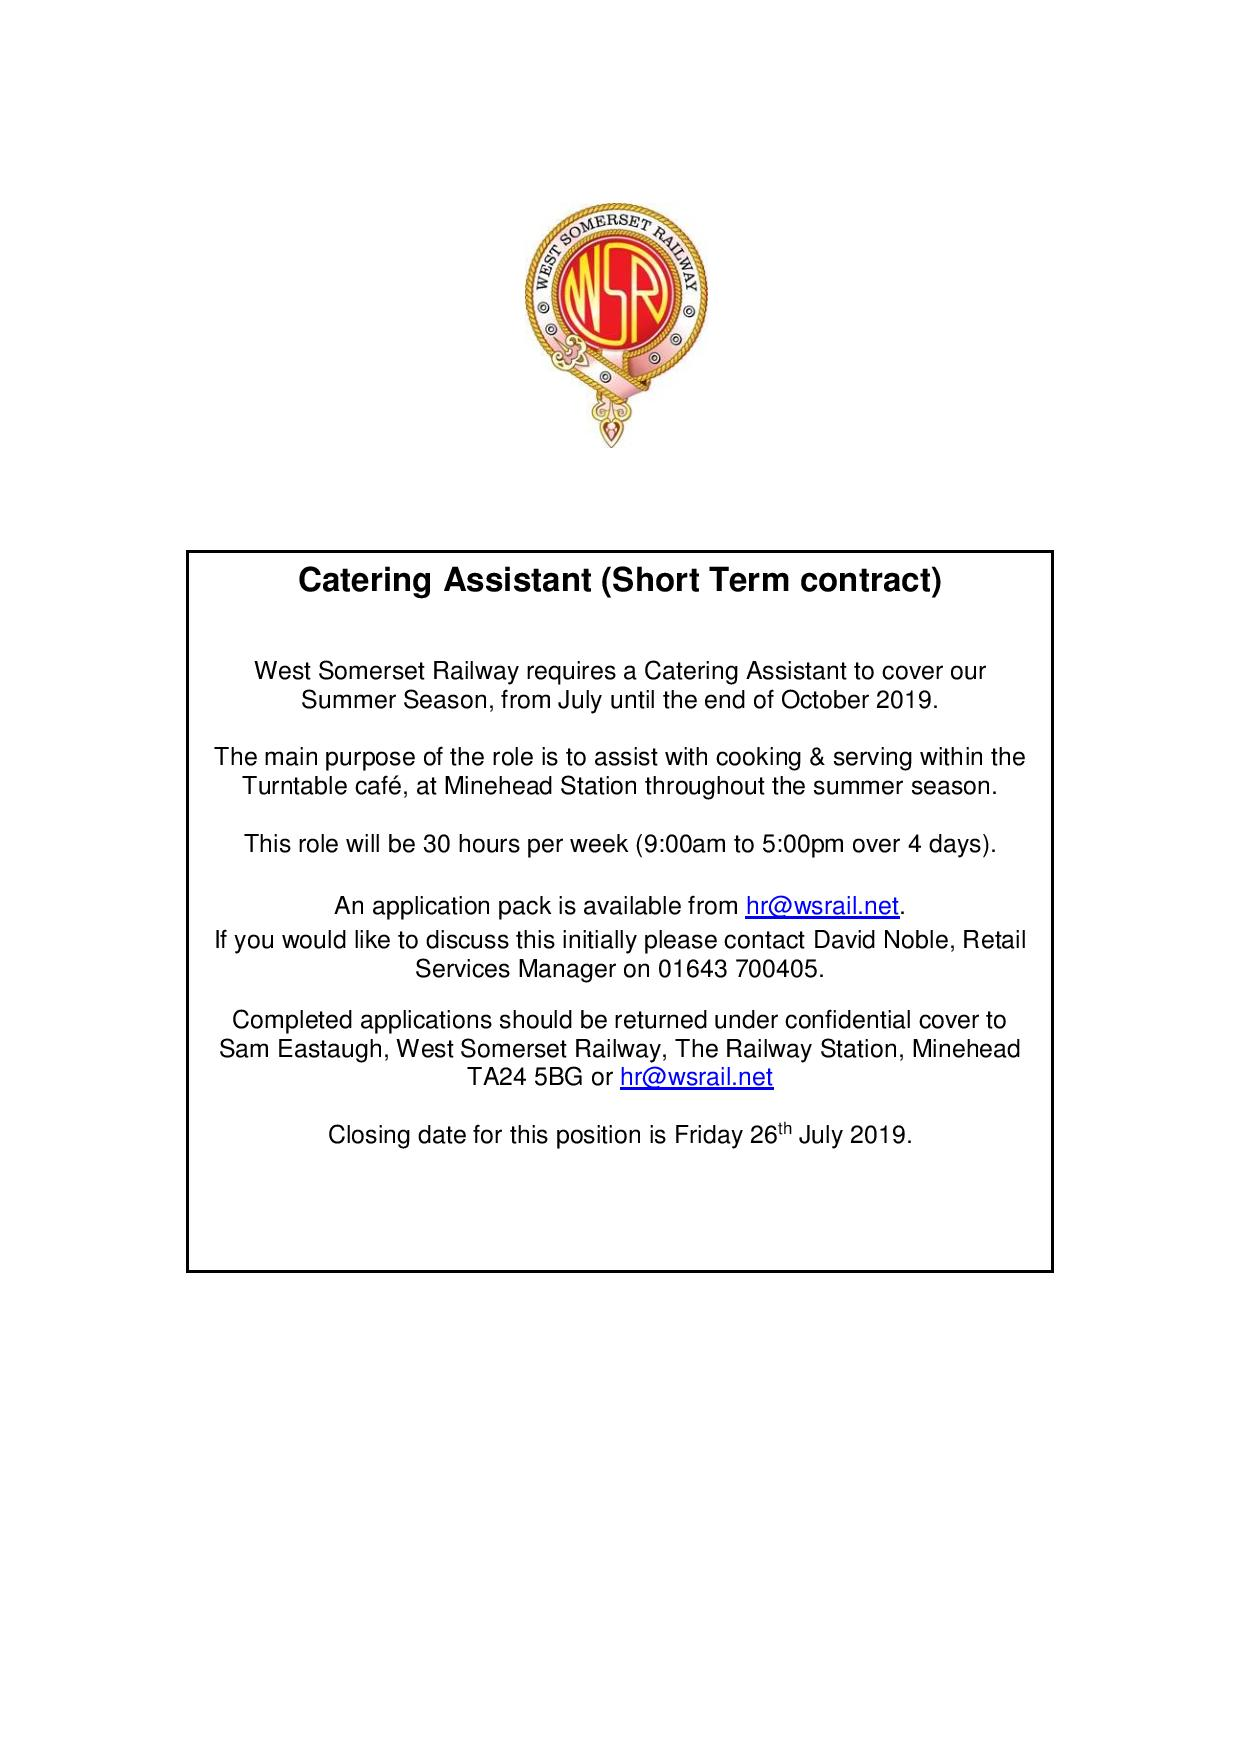 Catering Assistant vacancy